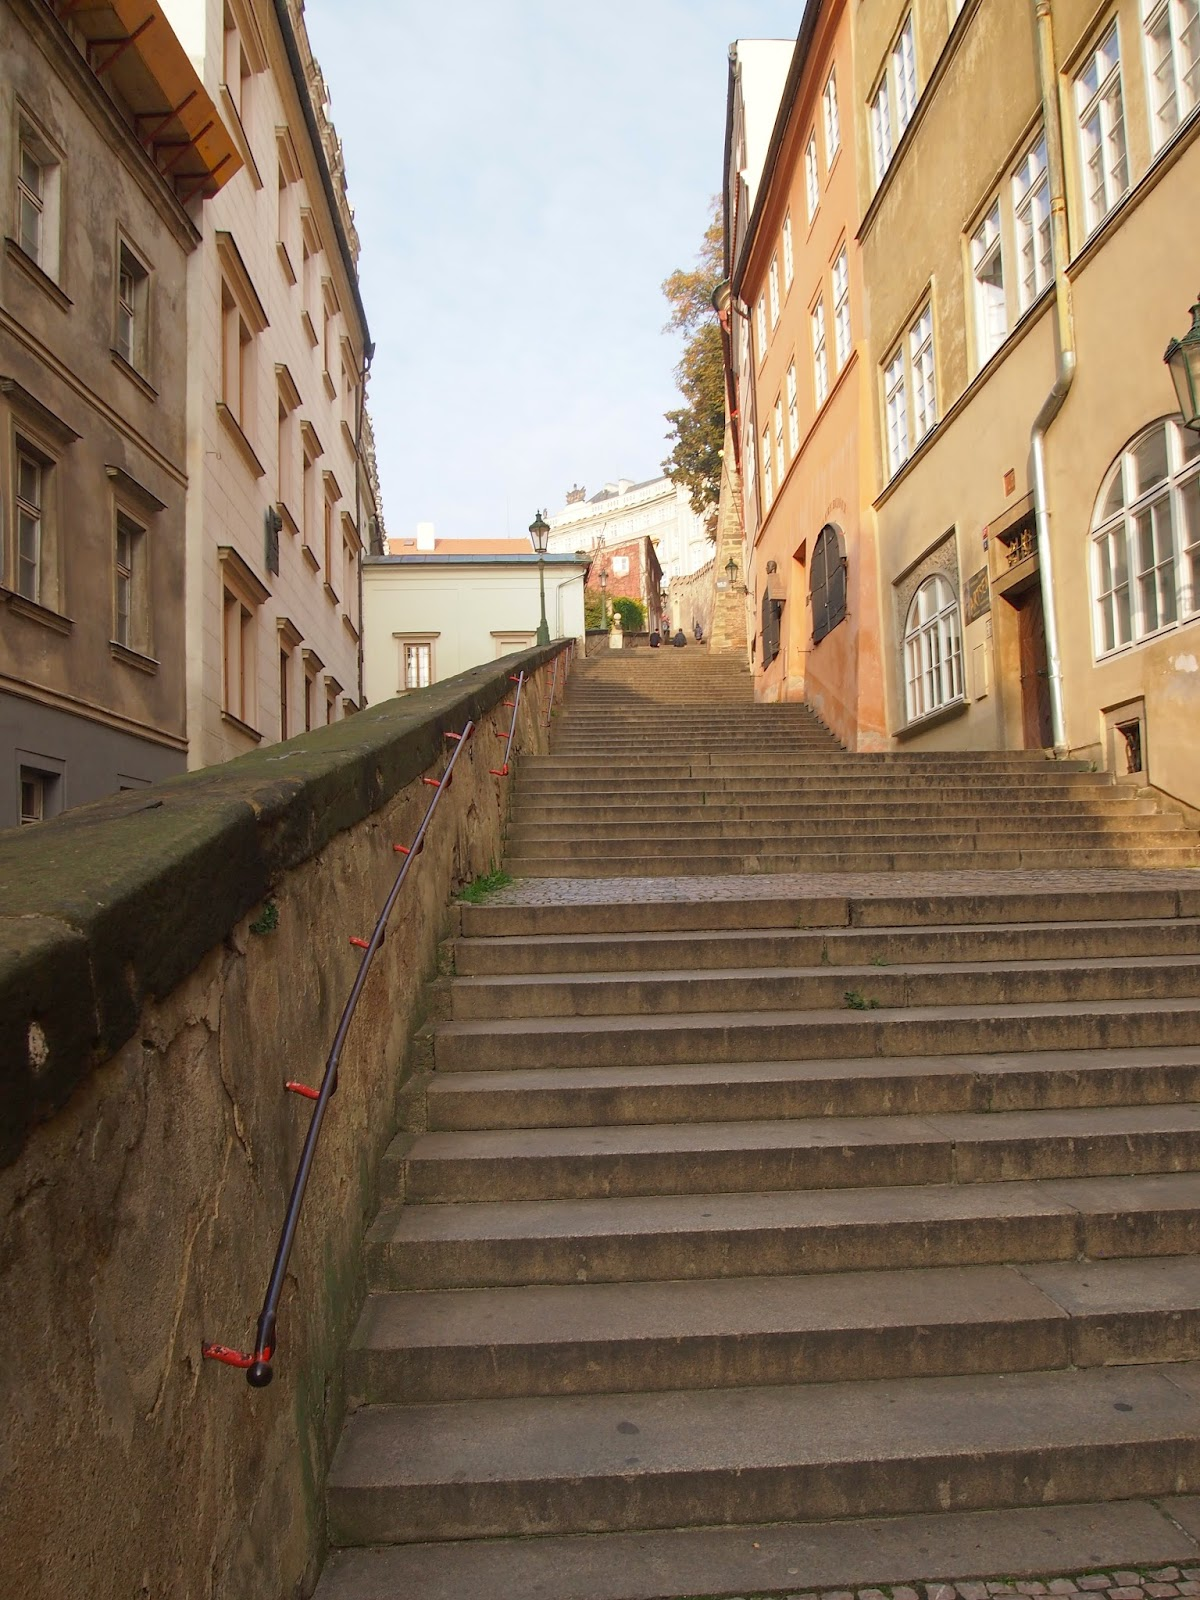 Walking up the steps to the Prague Castle